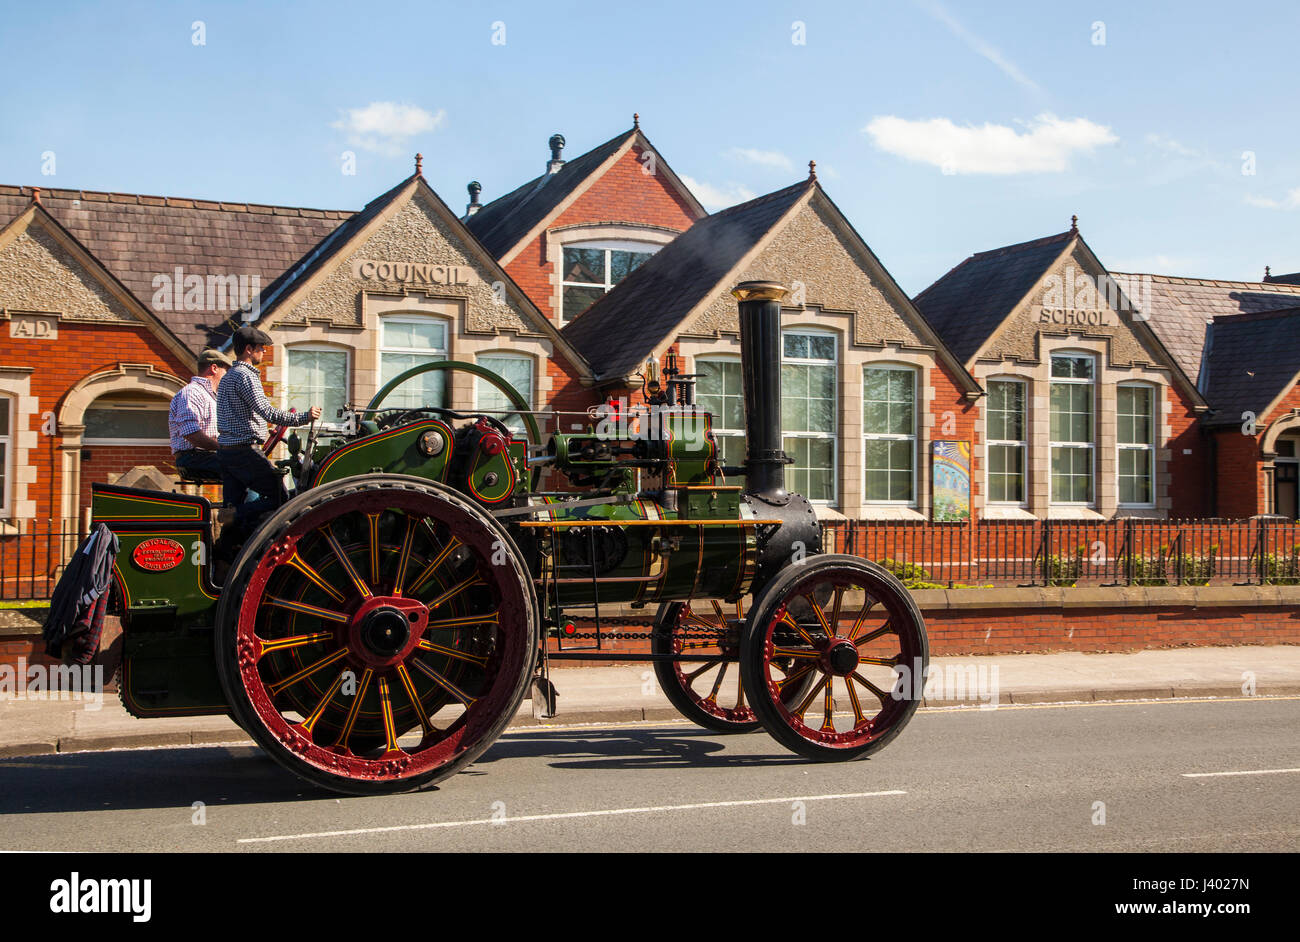 Vintage steam traction engine passing the old Sandbach council school building after taking part in the annual transport - Stock Image